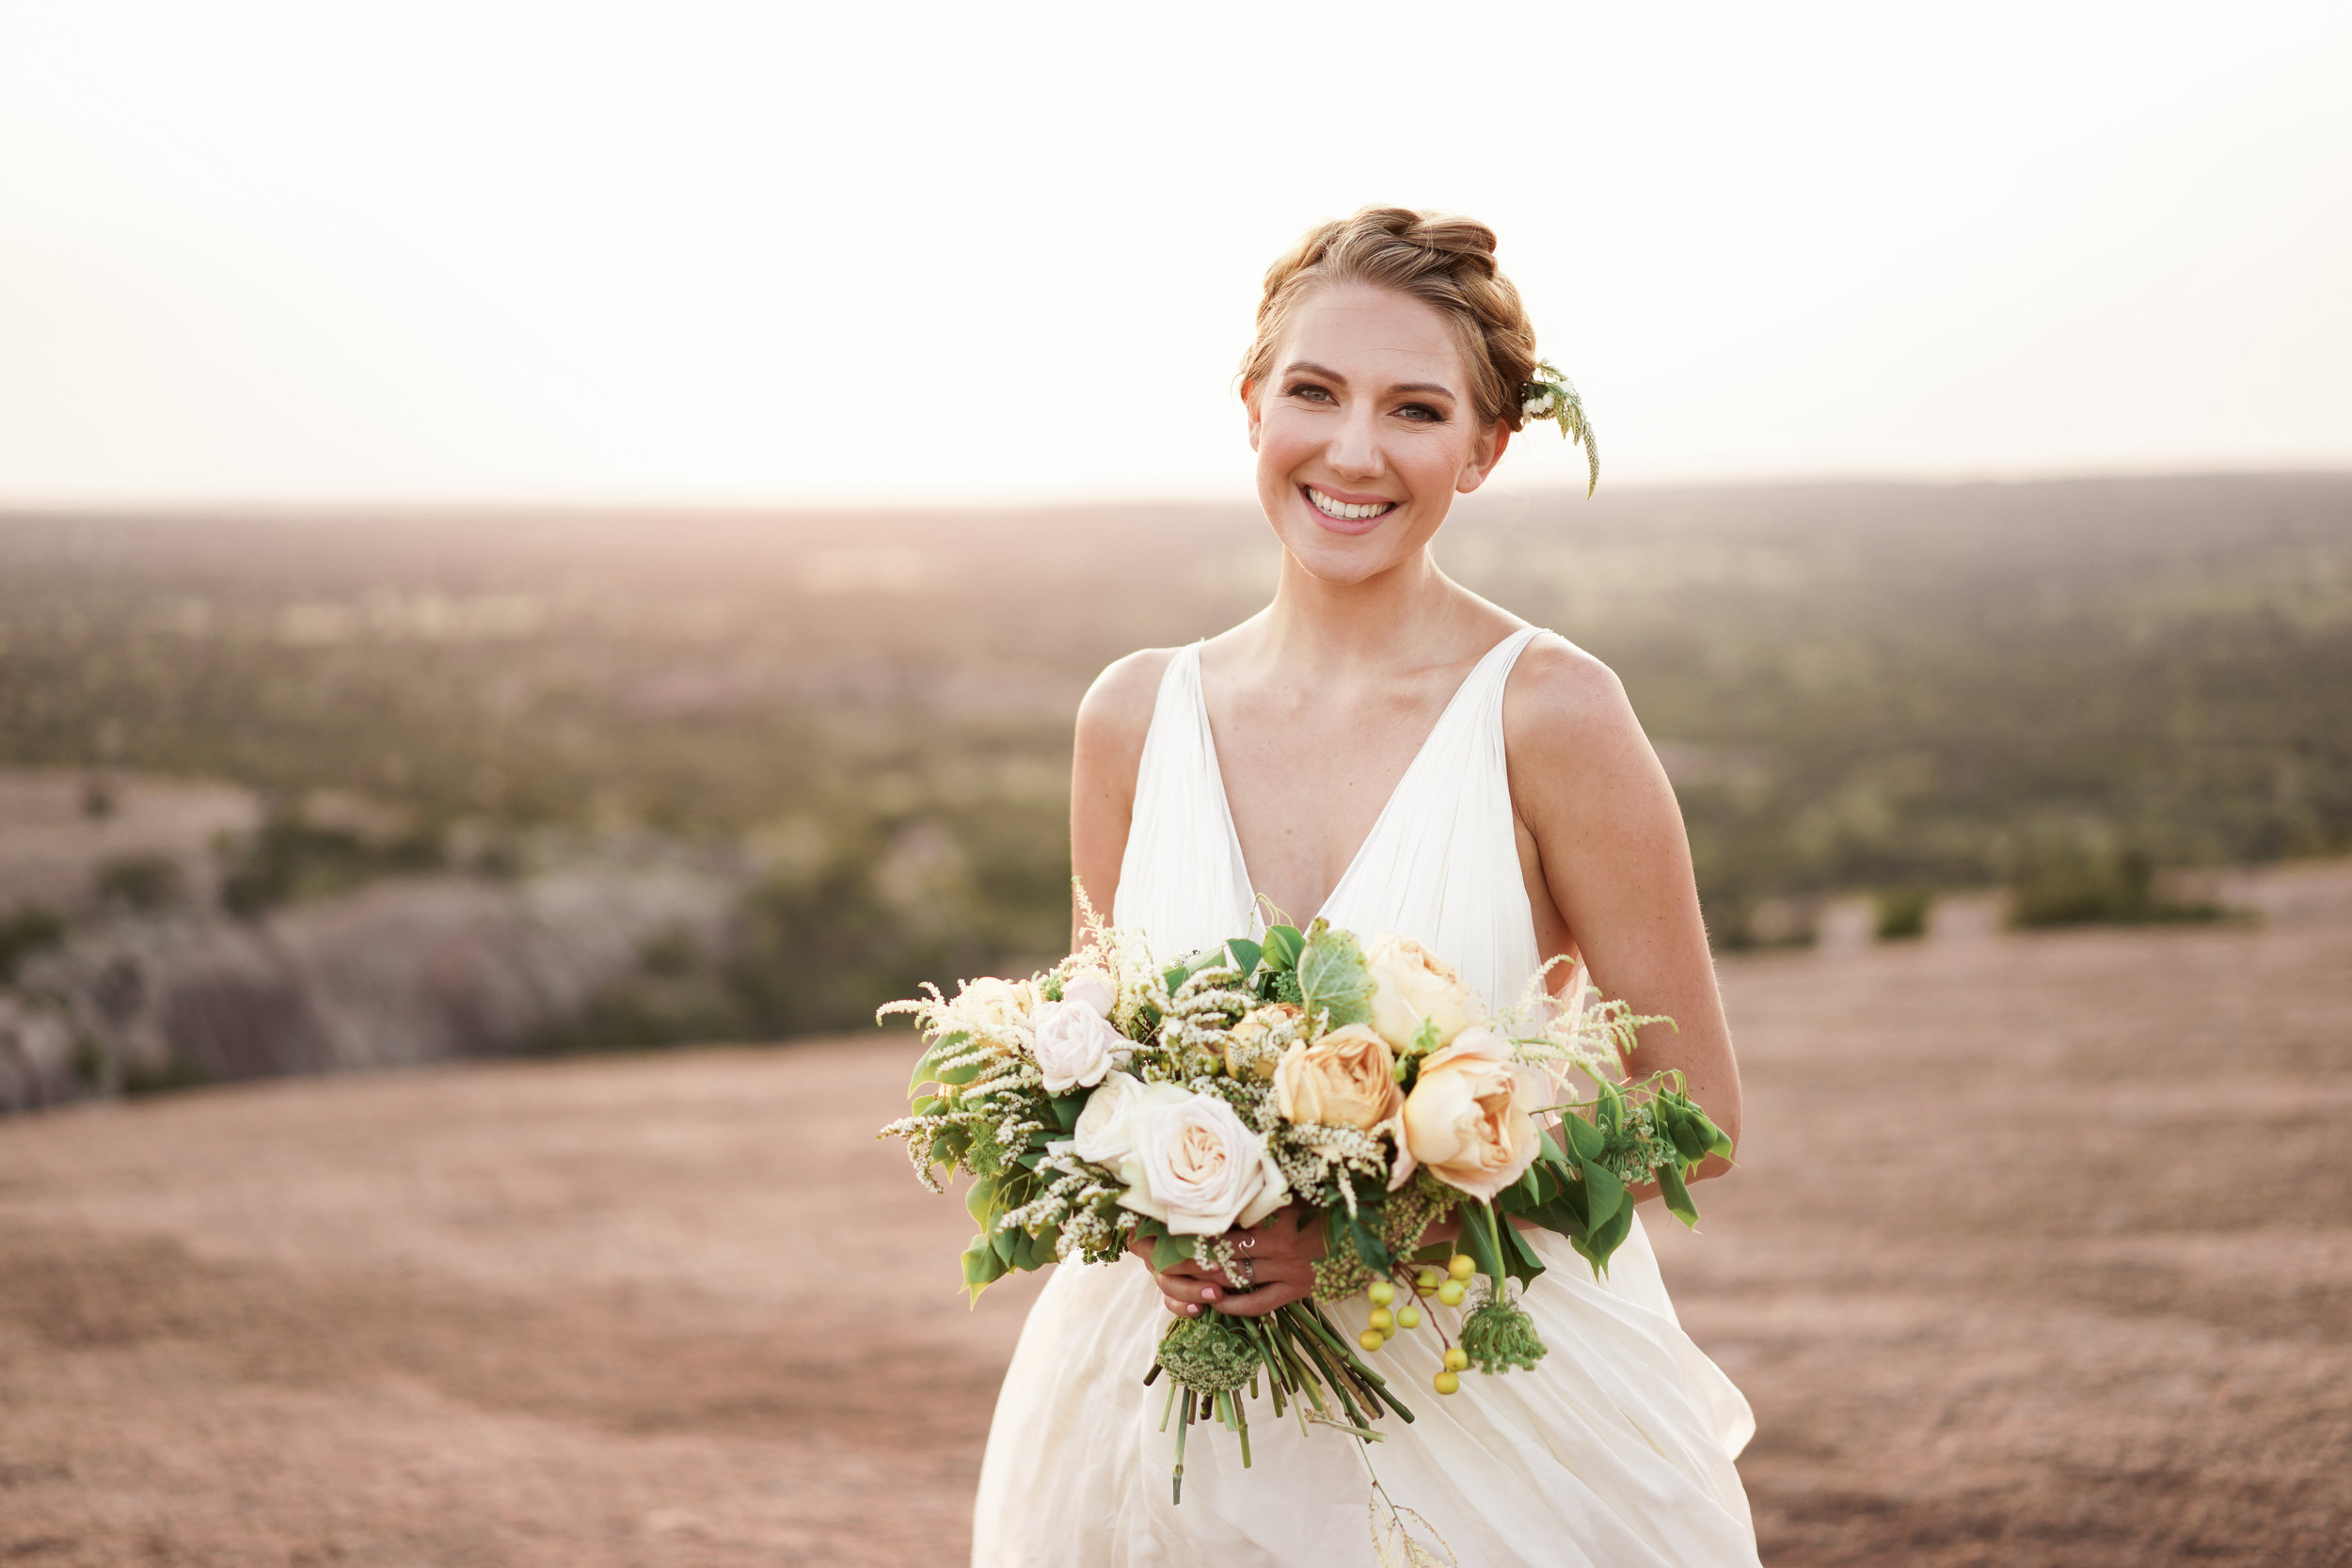 such a genuine smile and a beautiful bouquet by Austin florist clementine atx